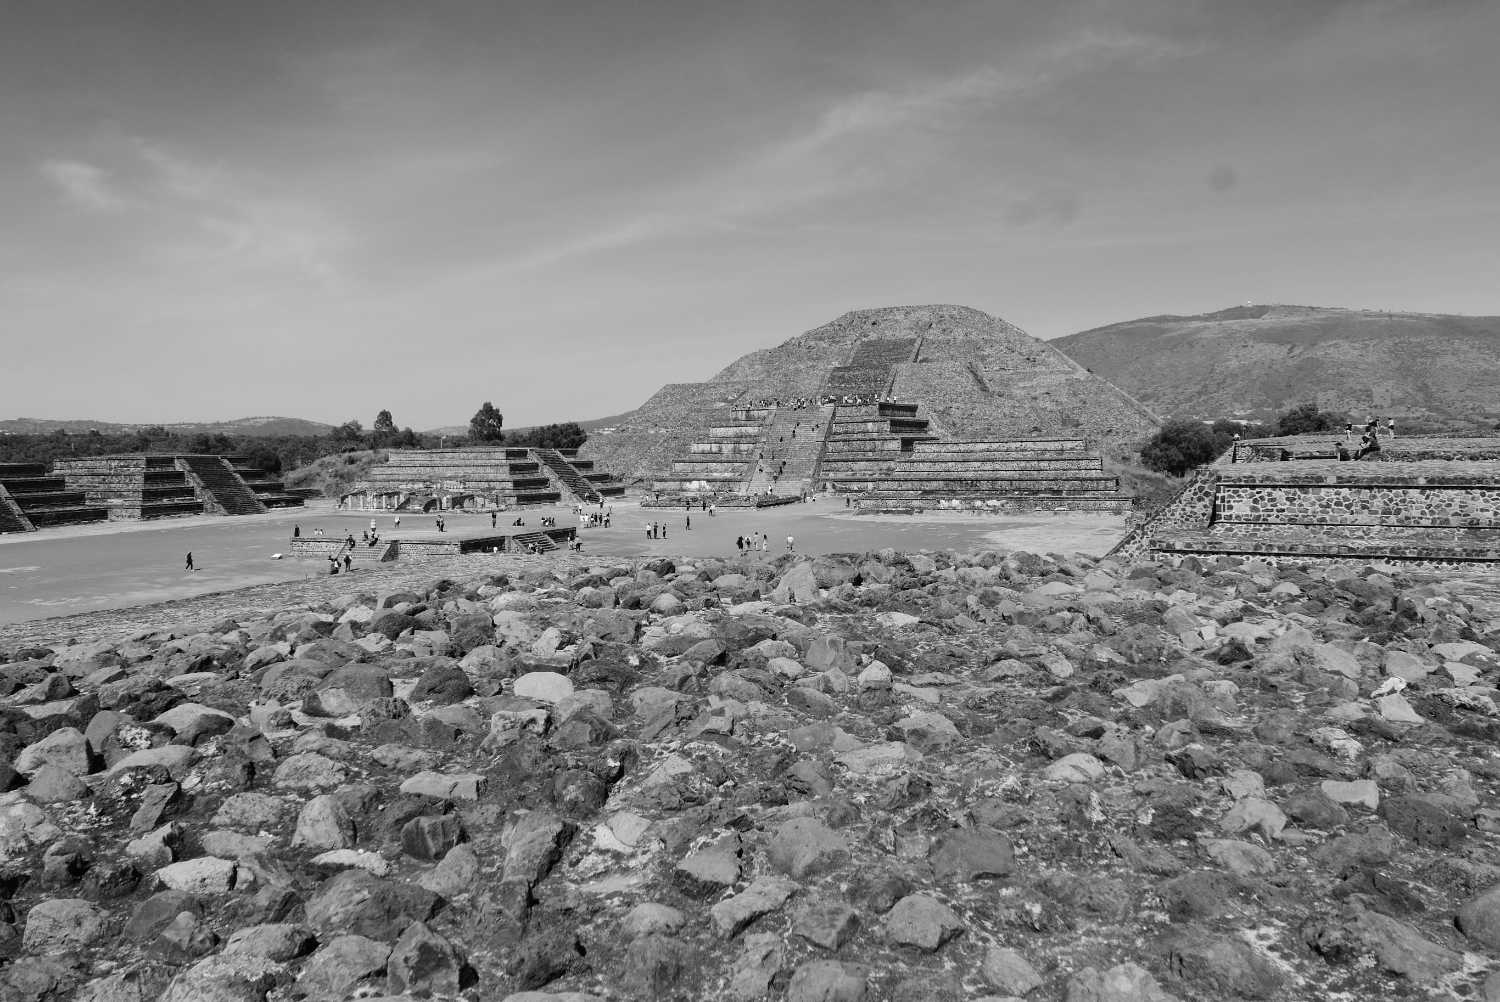 Overview of square in front of Pyramid of the Moon in Teotihuacan